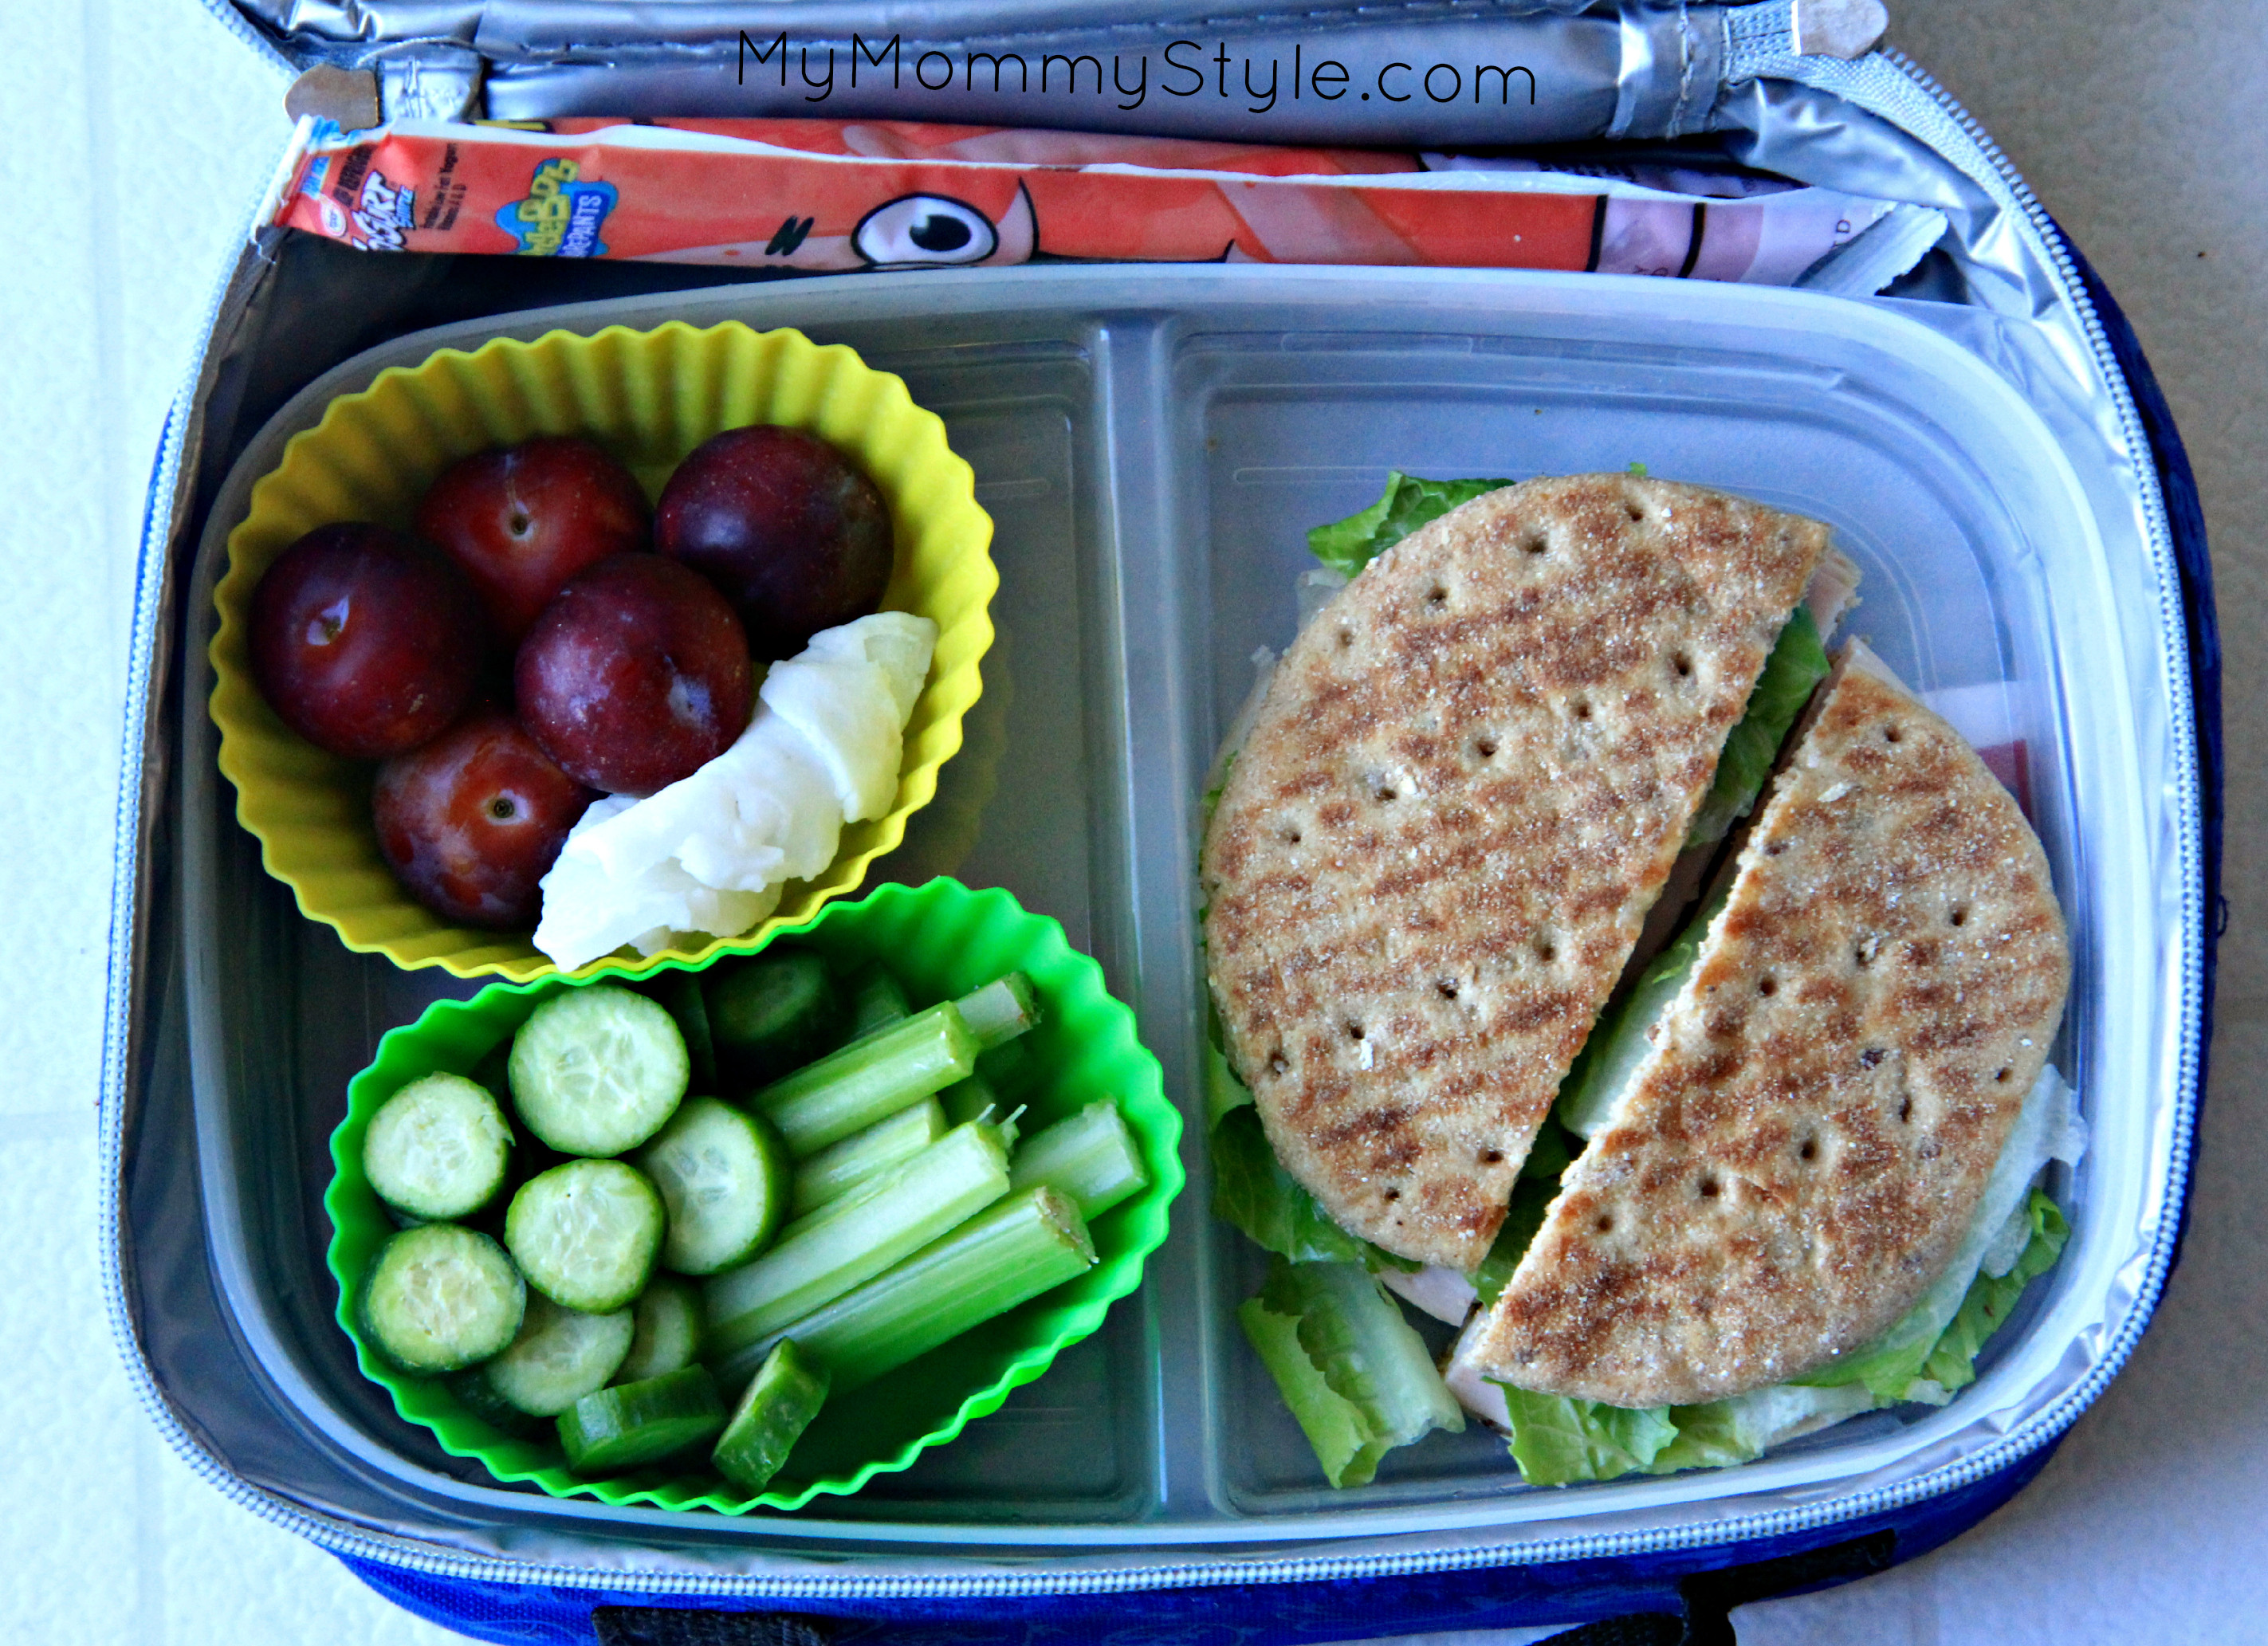 Healthy Food For School Lunches  Healthy Lunch Box Lunches CCE Suffolk County Family